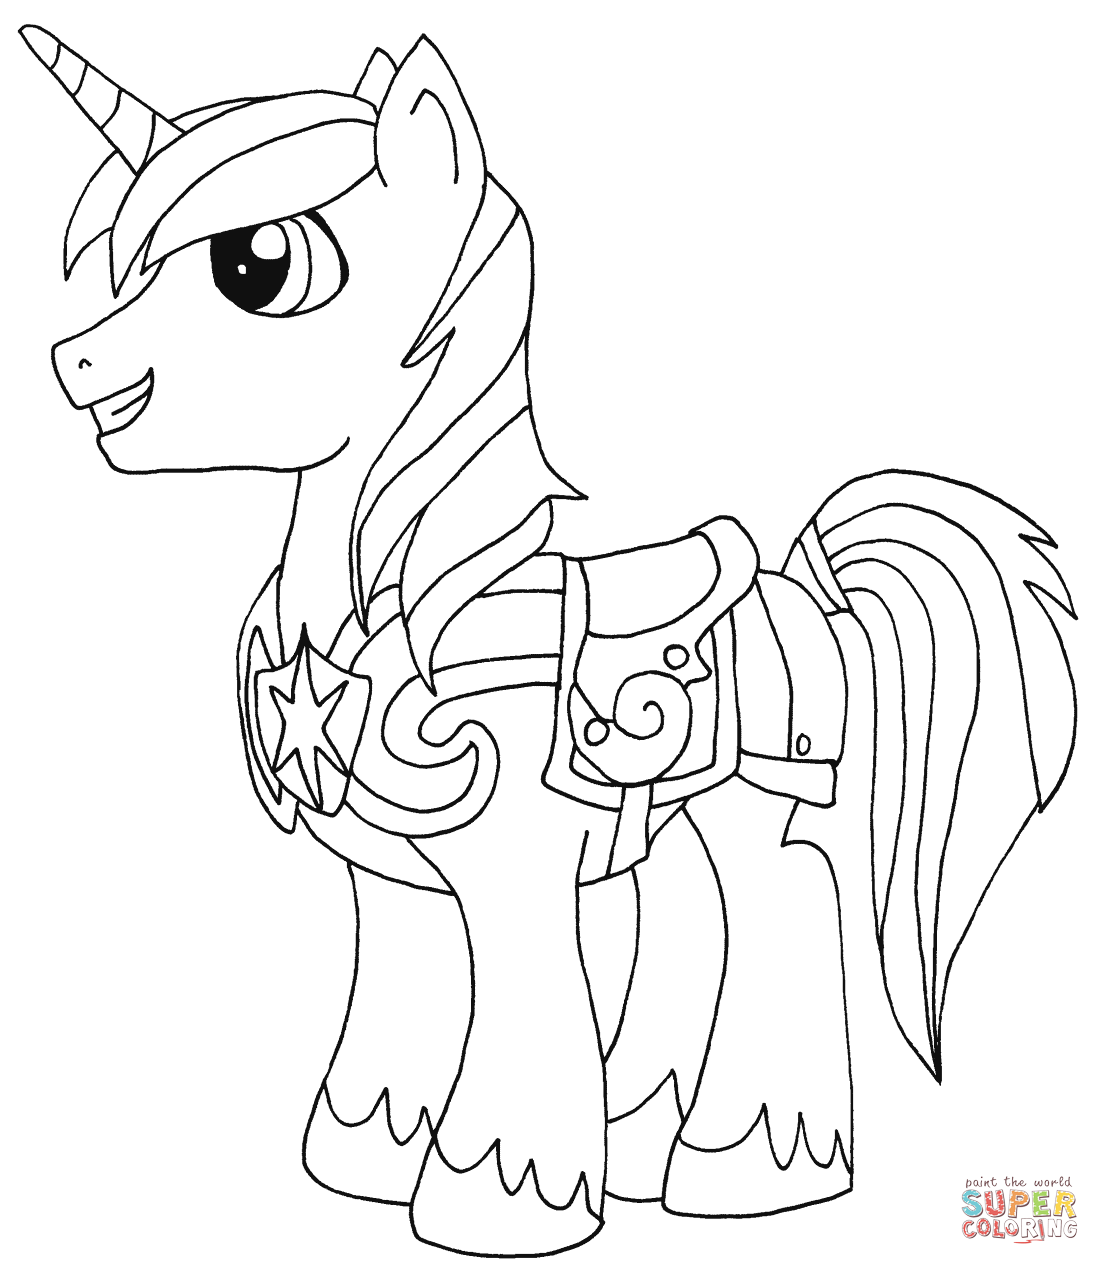 Ausmalbilder My Little Pony Equestria : My Little Pony Drawing Template At Getdrawings Com Free For